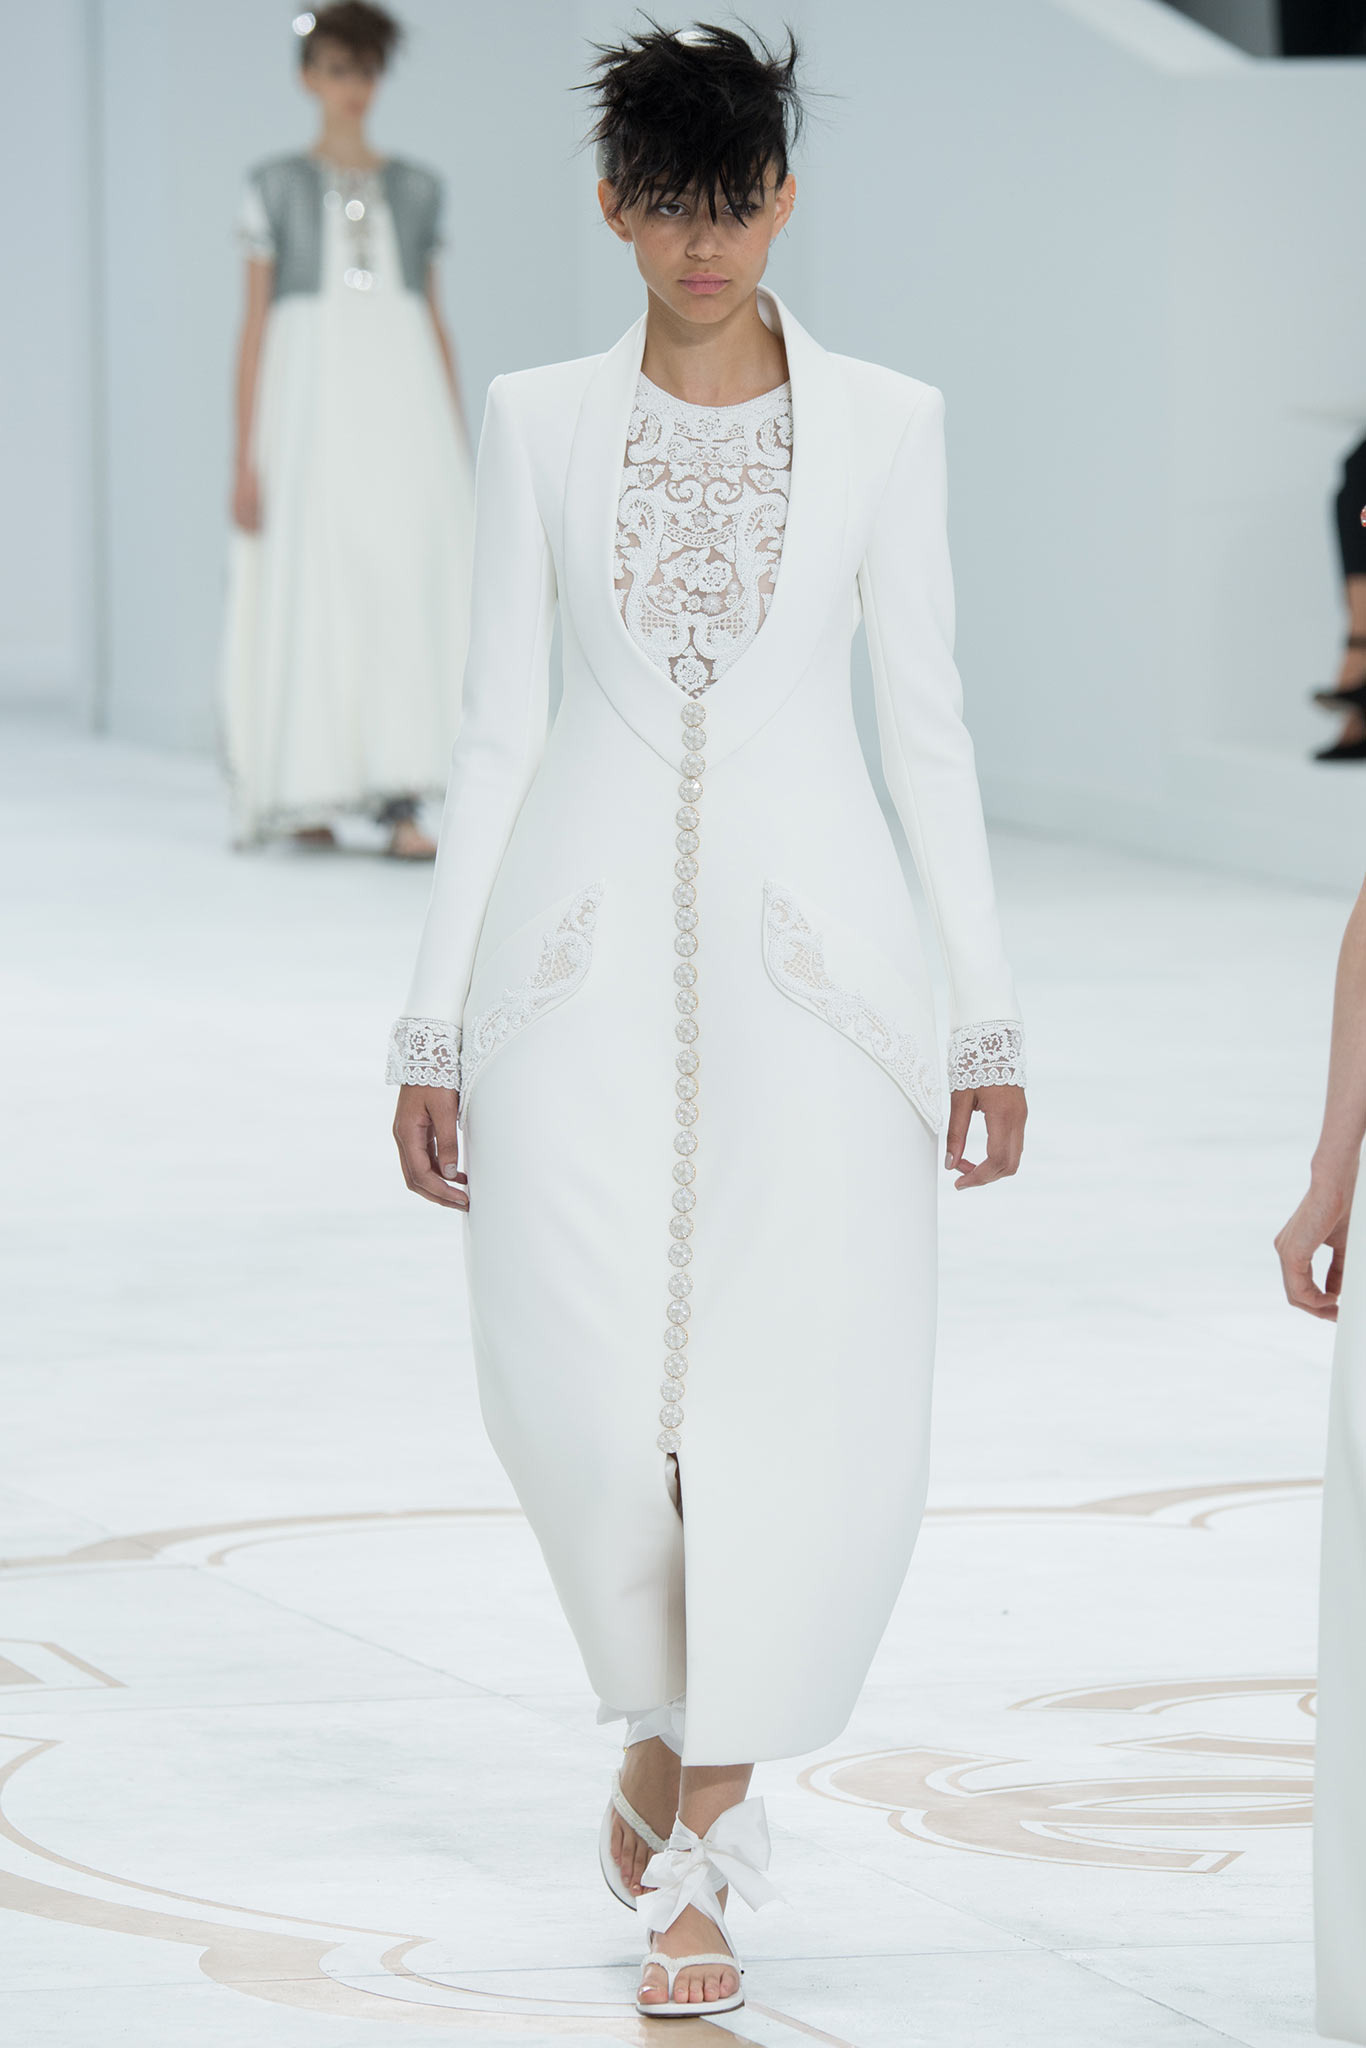 Binx | Chanel Fall 2014 Couture (Photography: Kim Weston Arnold / Indigitalimages.com via Style.com)